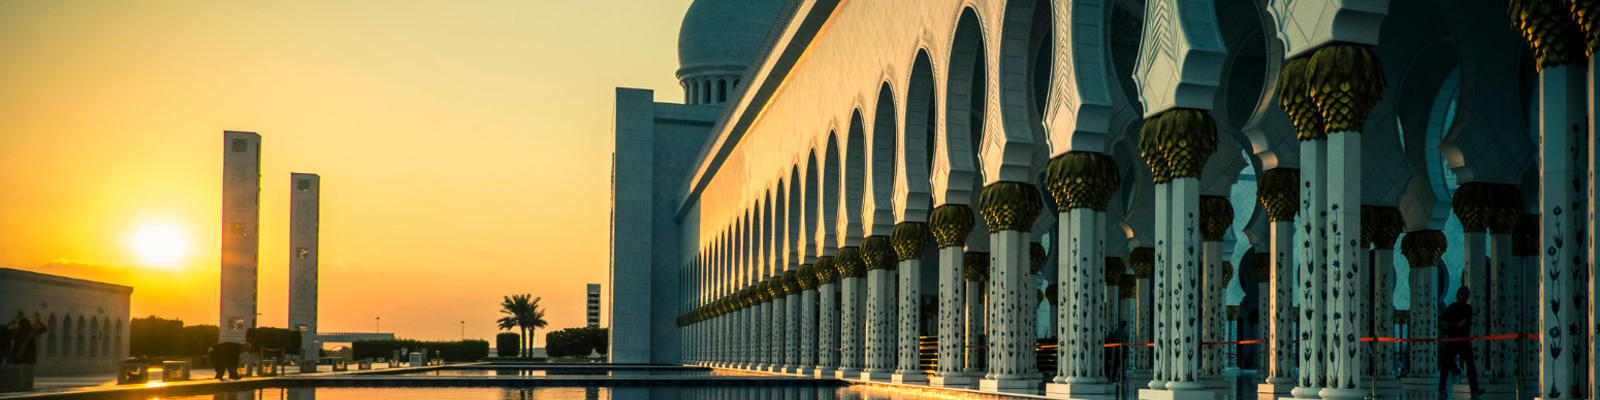 An external view over a reflection pool at sunset at the Grand Mosque in Abu Dhabi